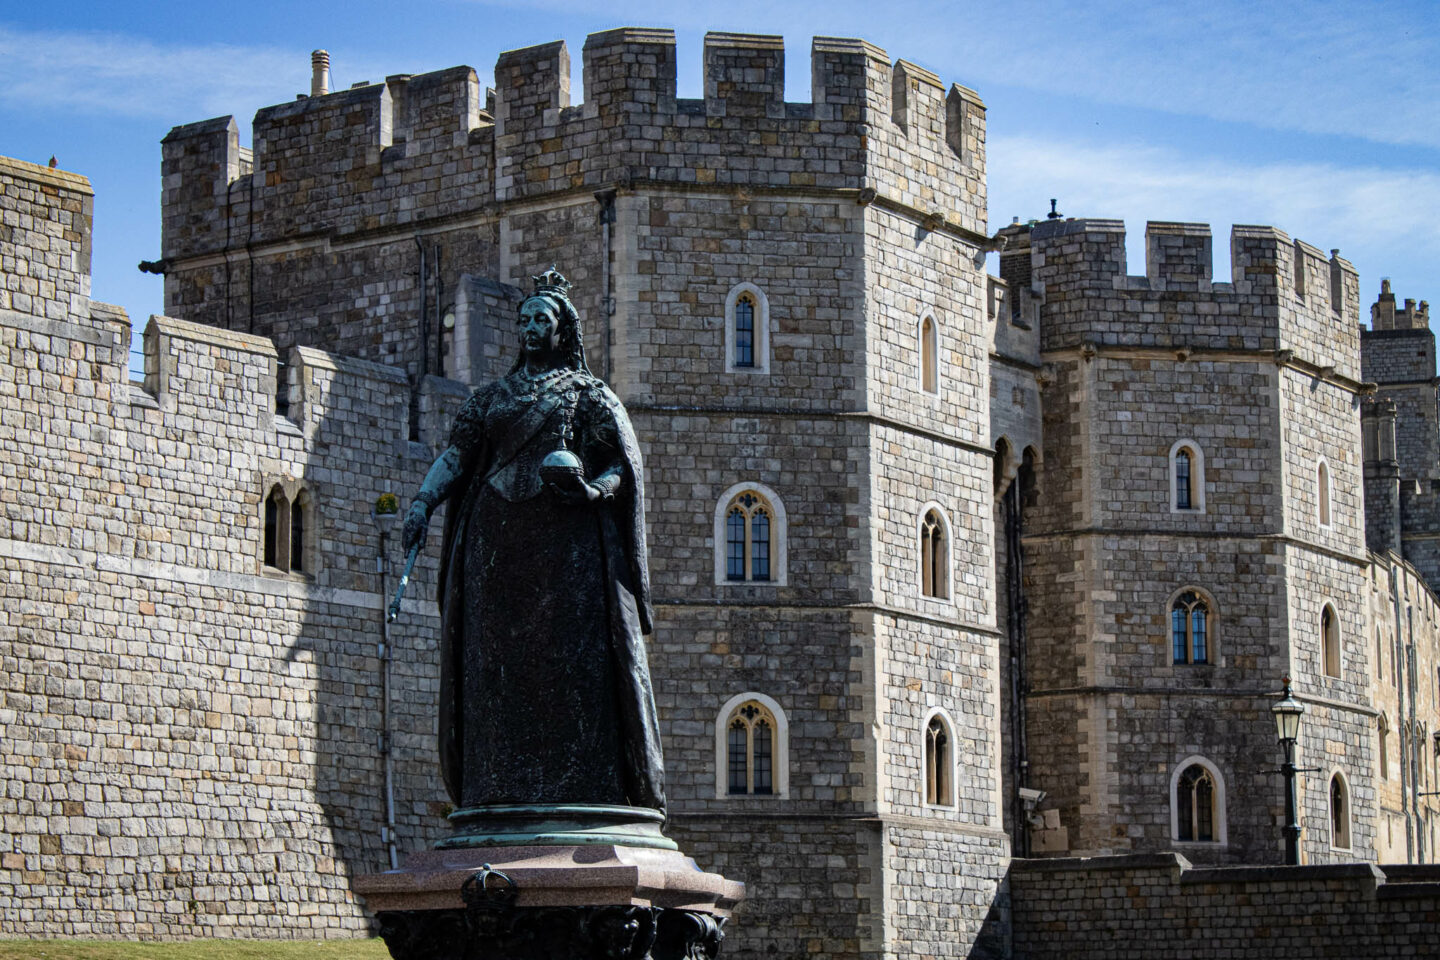 This statue of Queen Victoria guards the outer entrance to Windsor Castle. She was one of Windsor's most famous resident although was said to have much preferred being at Balmoral.